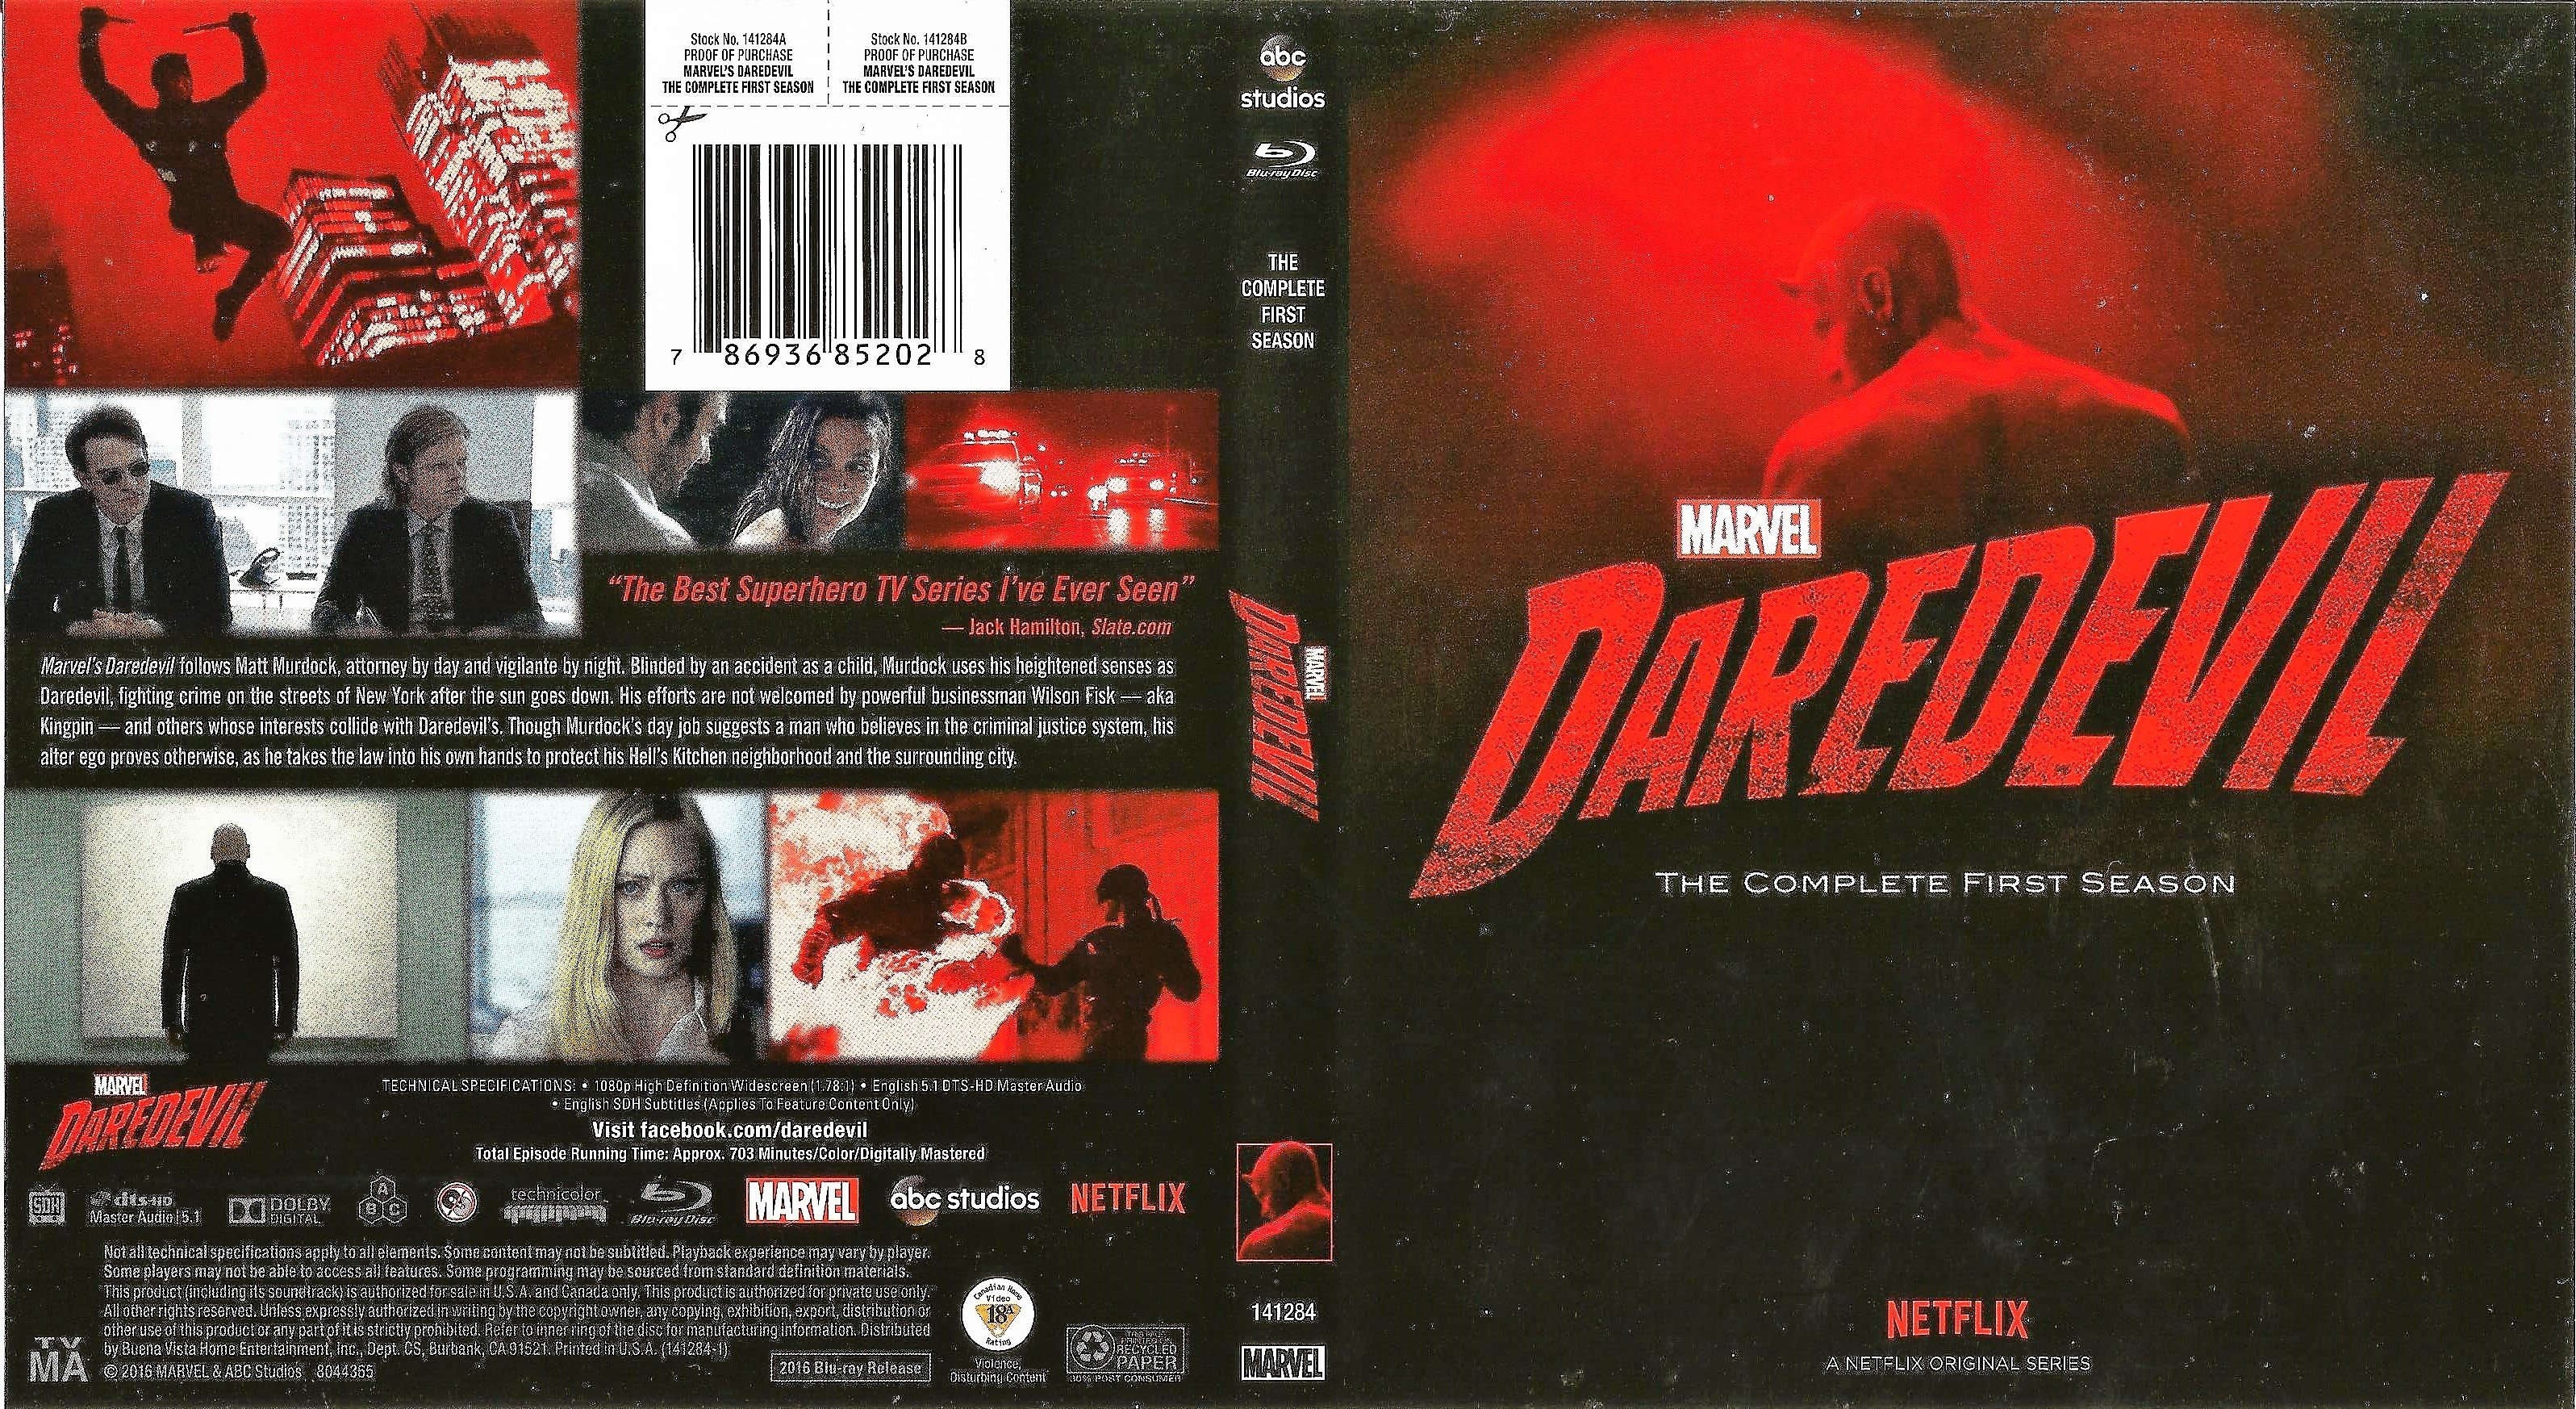 Marvels Daredevil The Complete First Season Blu Ray Cover